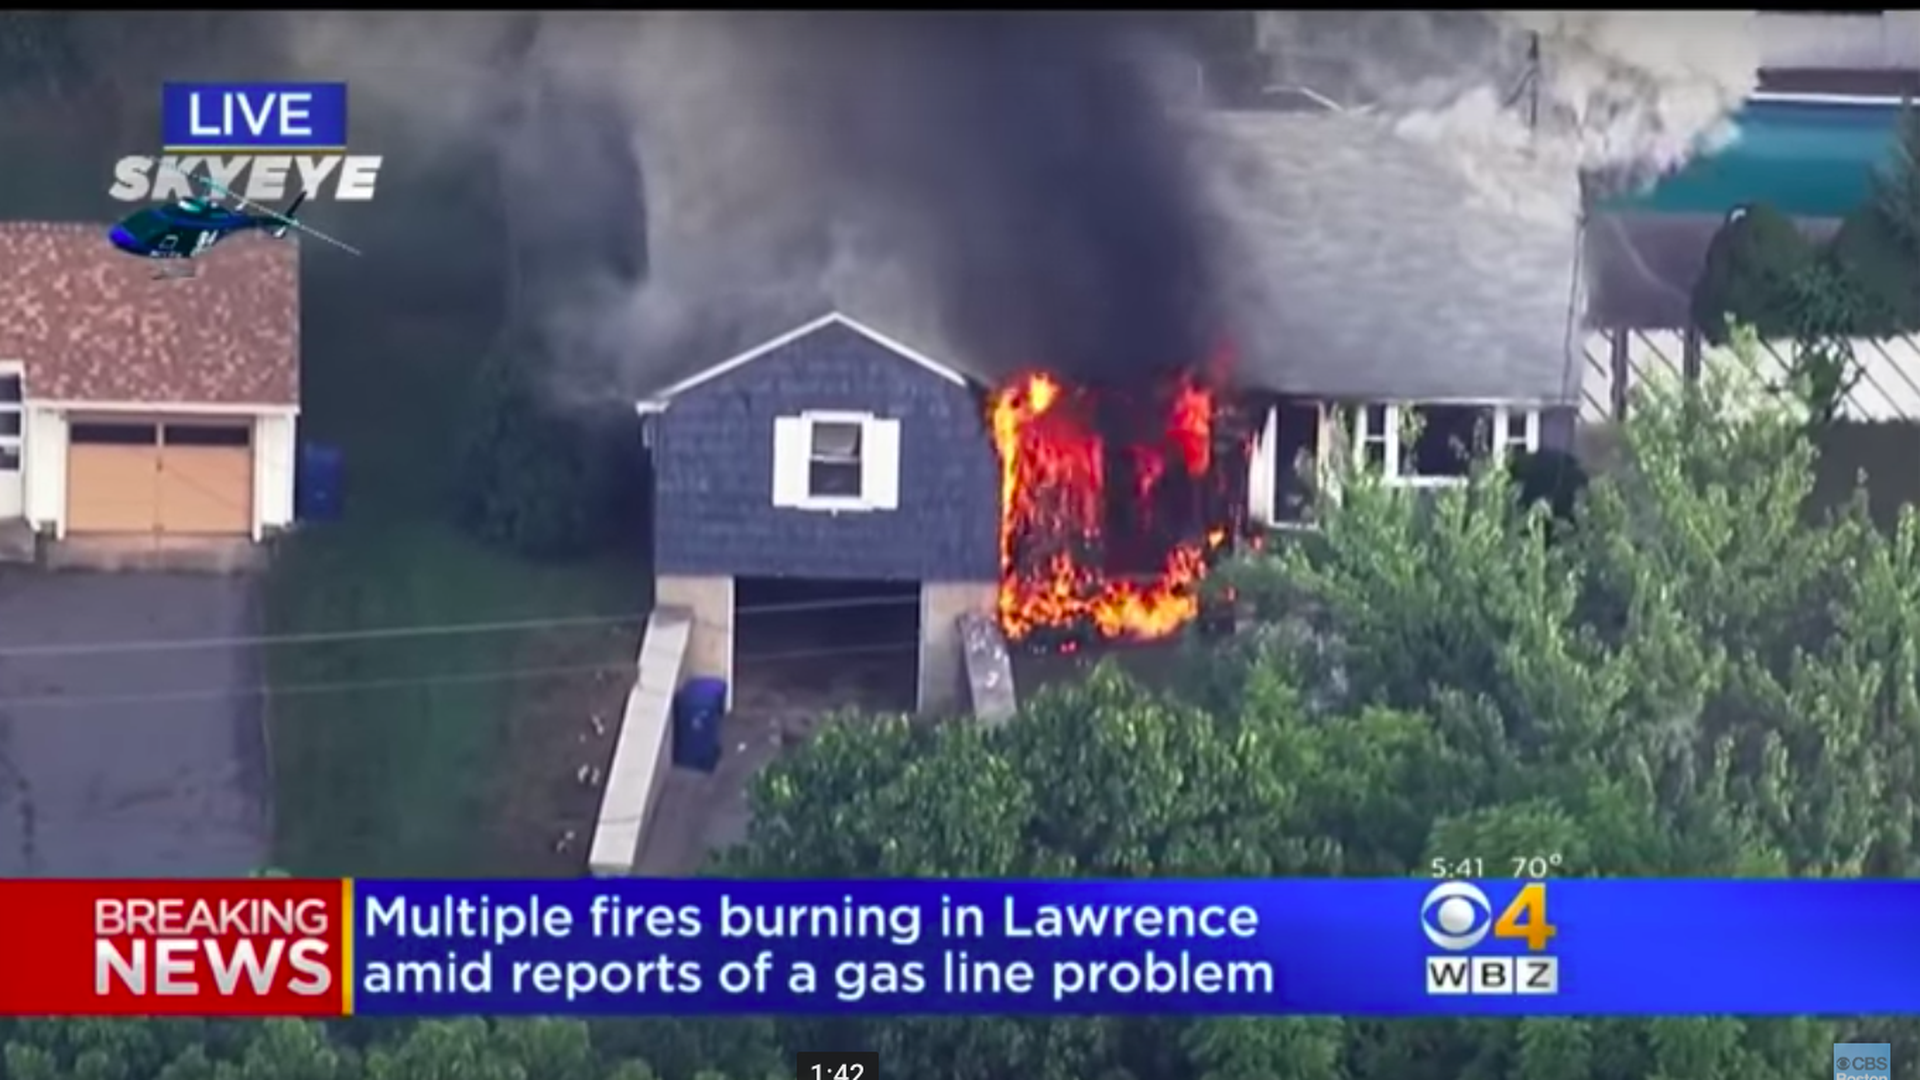 Flames consuming a home in Lawrence, Massachusetts. Photo via CBS Boston Youtube page.